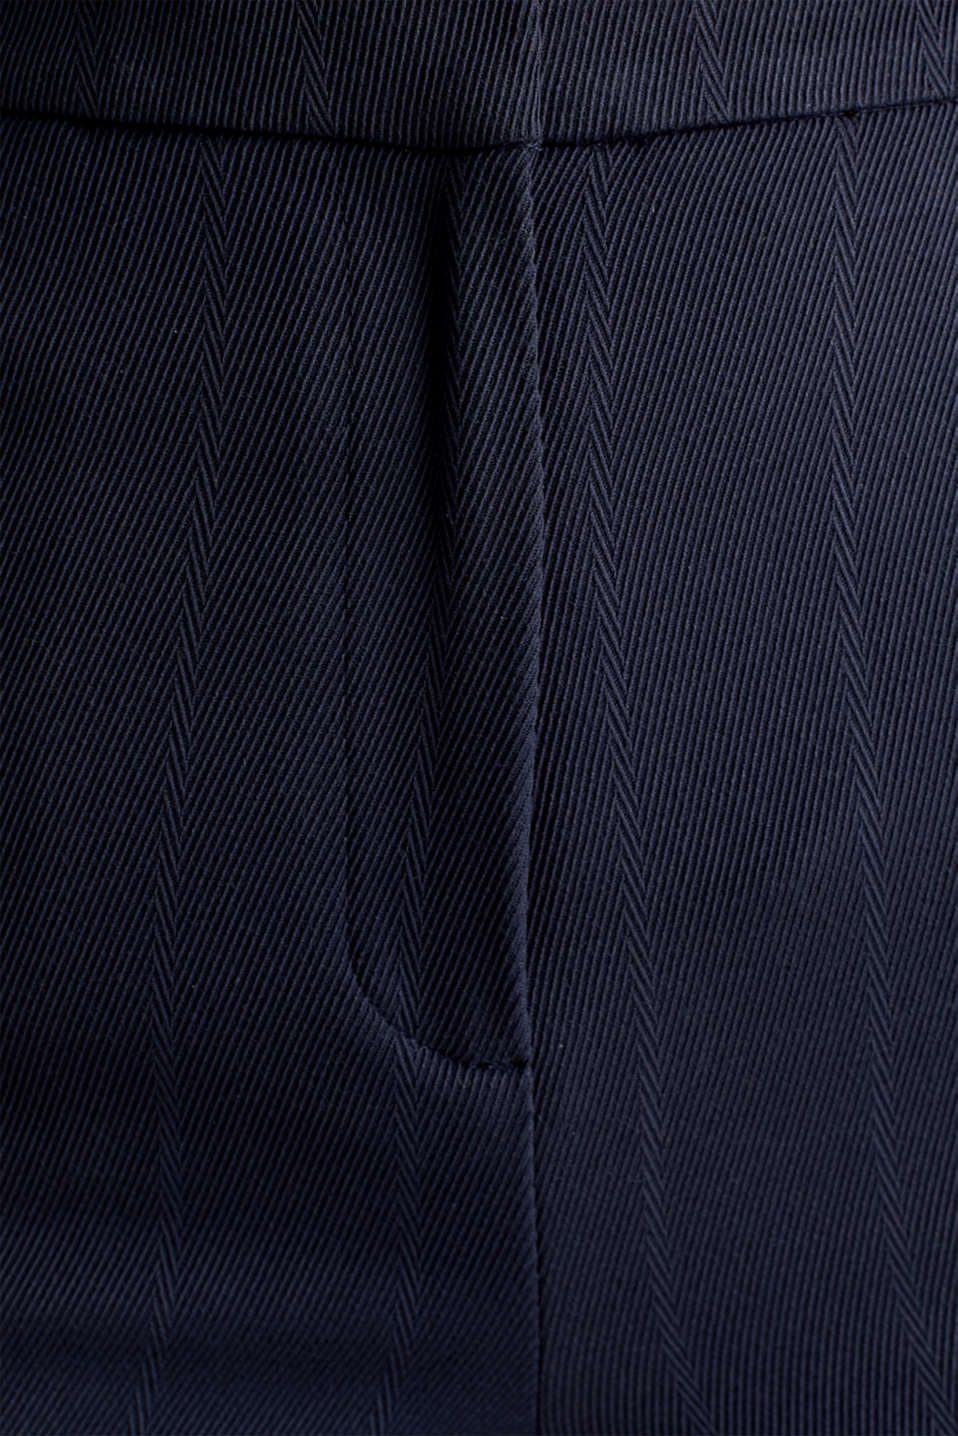 HERRINGBONE Mix + Match stretch trousers, NAVY, detail image number 4